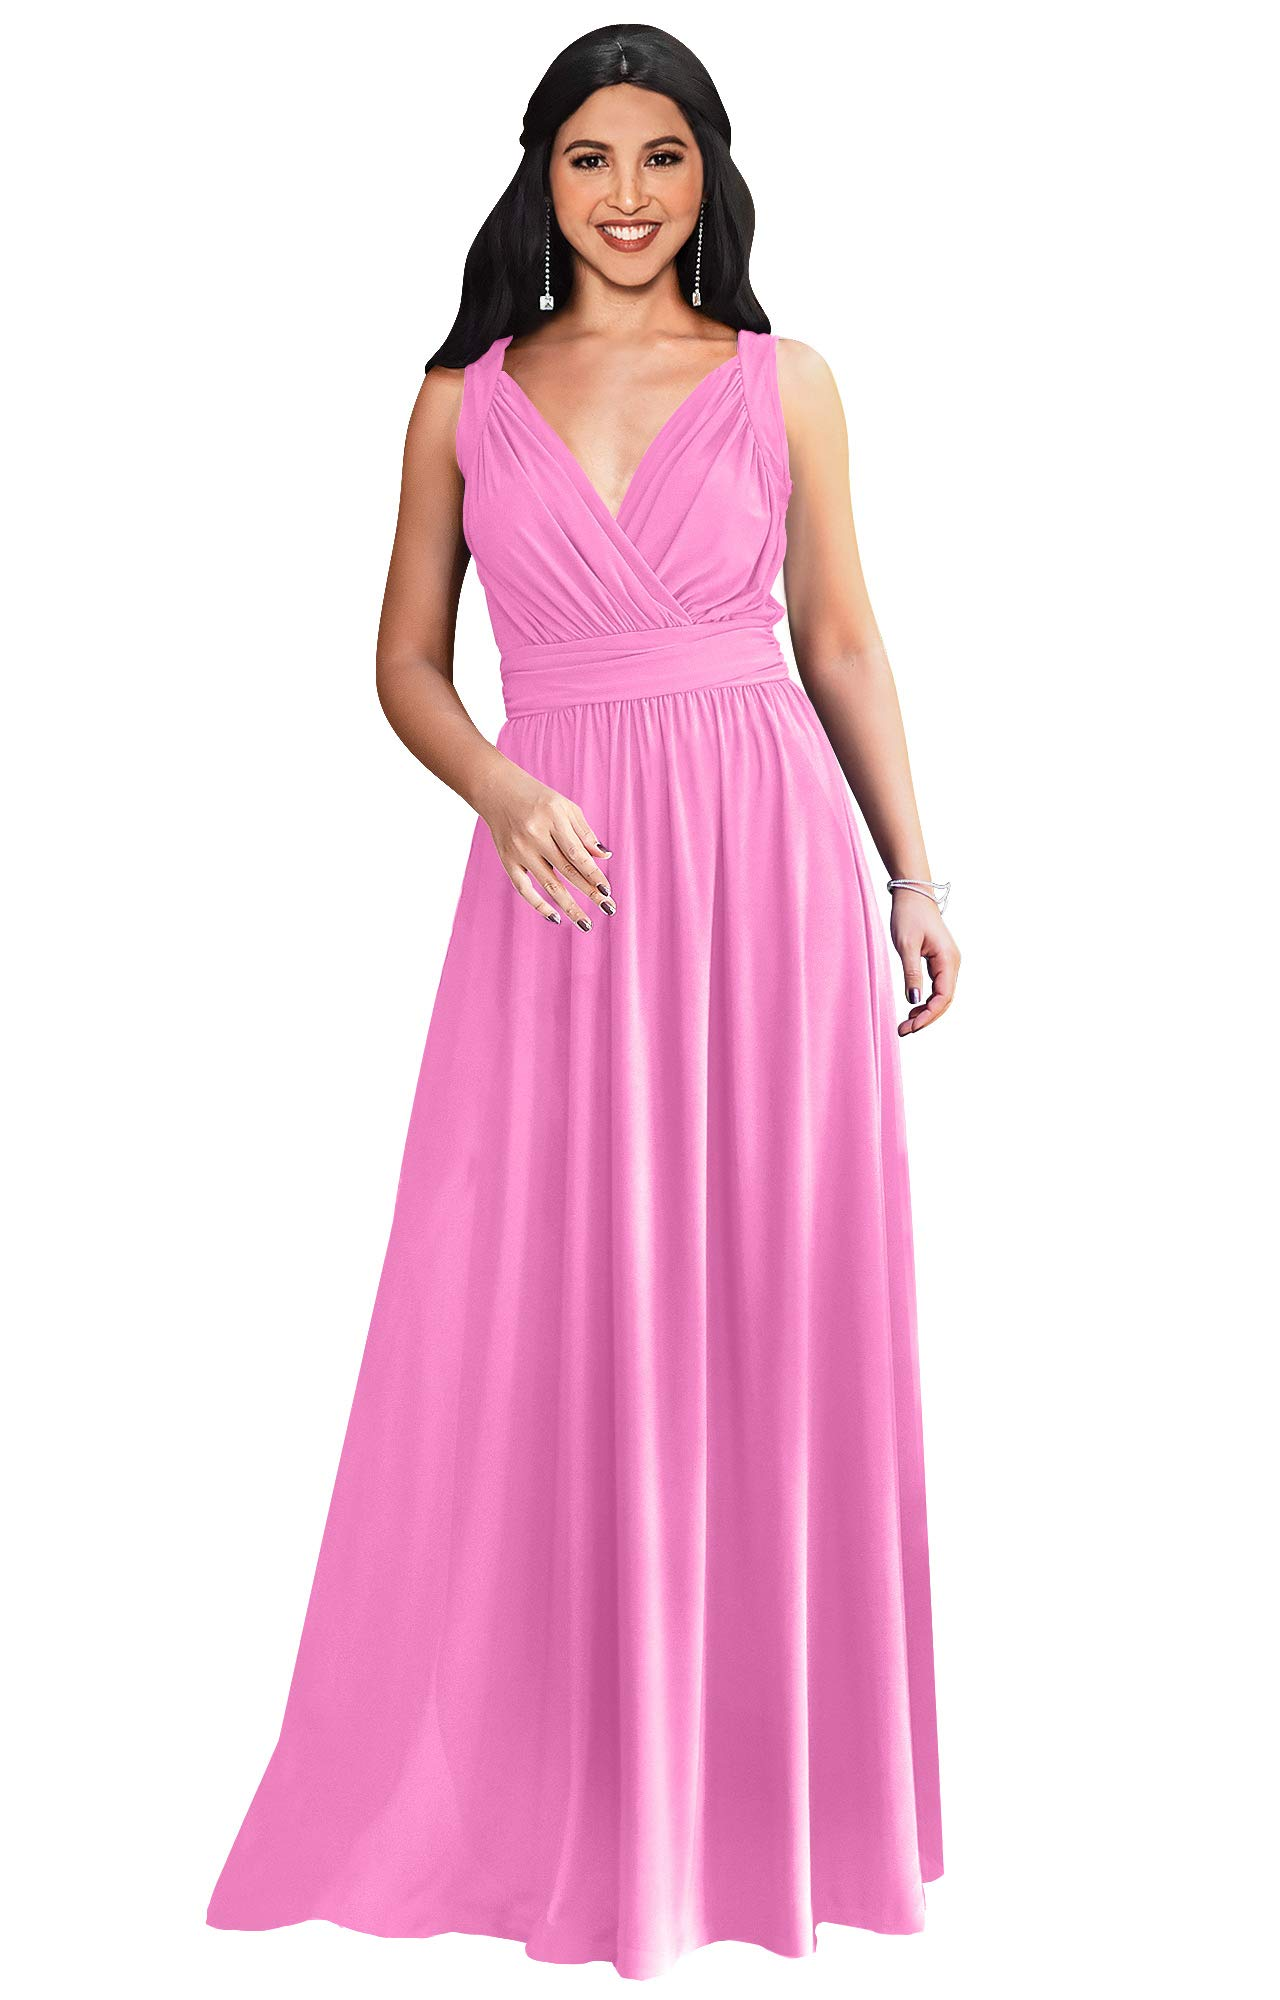 KOH KOH Plus Size Womens Long Sleeveless Flowy Bridesmaids Cocktail Party Evening Formal Sexy Summer Wedding Guest Ball Prom Gown Gowns Maxi Dress Dresses, Hot Fuchsia Pink 2XL 18-20 by KOH KOH